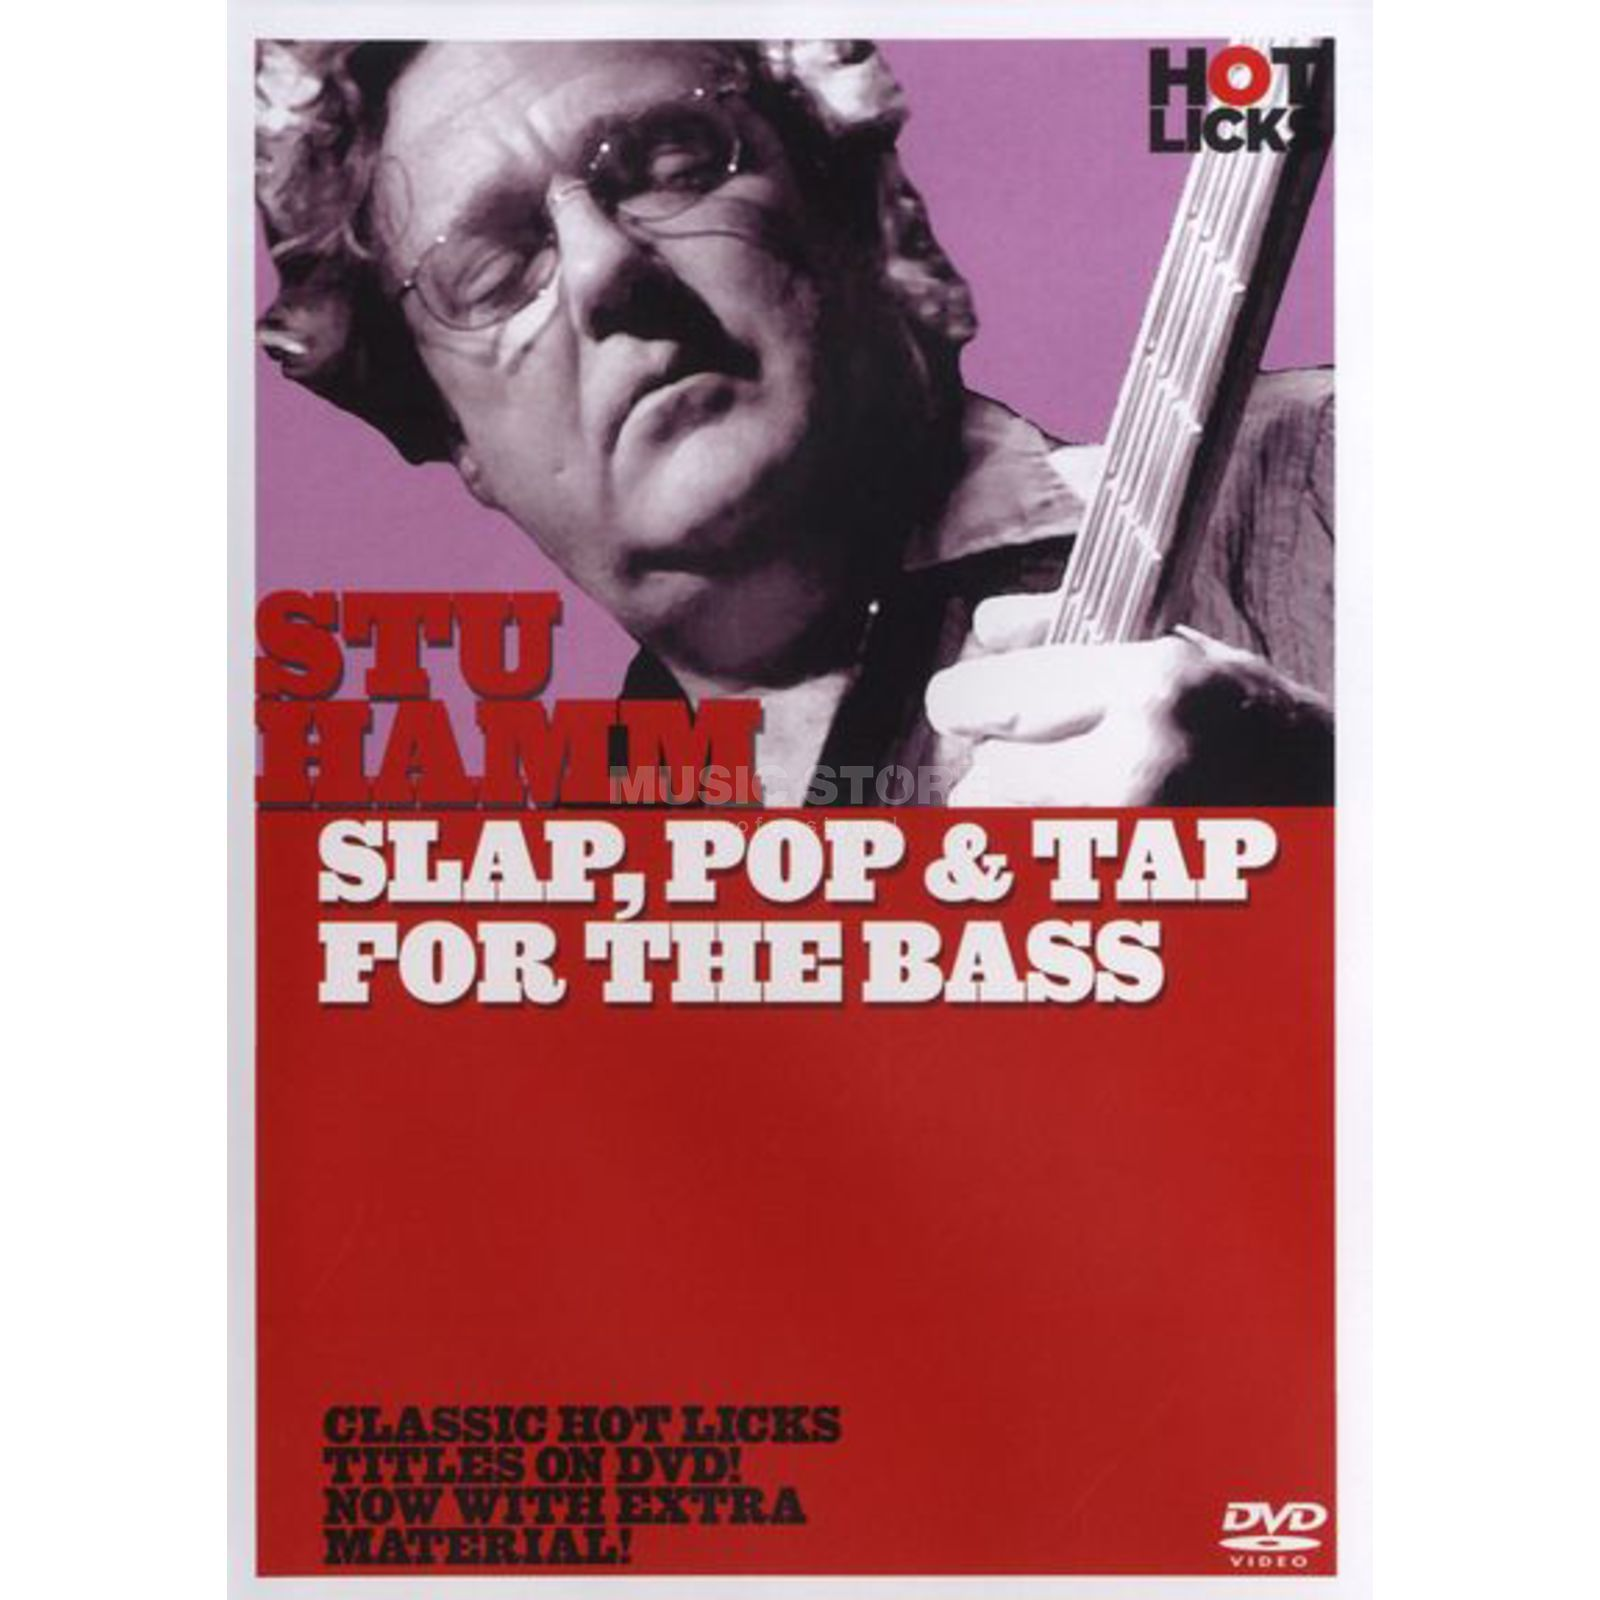 Hotlicks Videos Stu Hamm - Slap, Pop & Tap Hot Licks, DVD Produktbillede